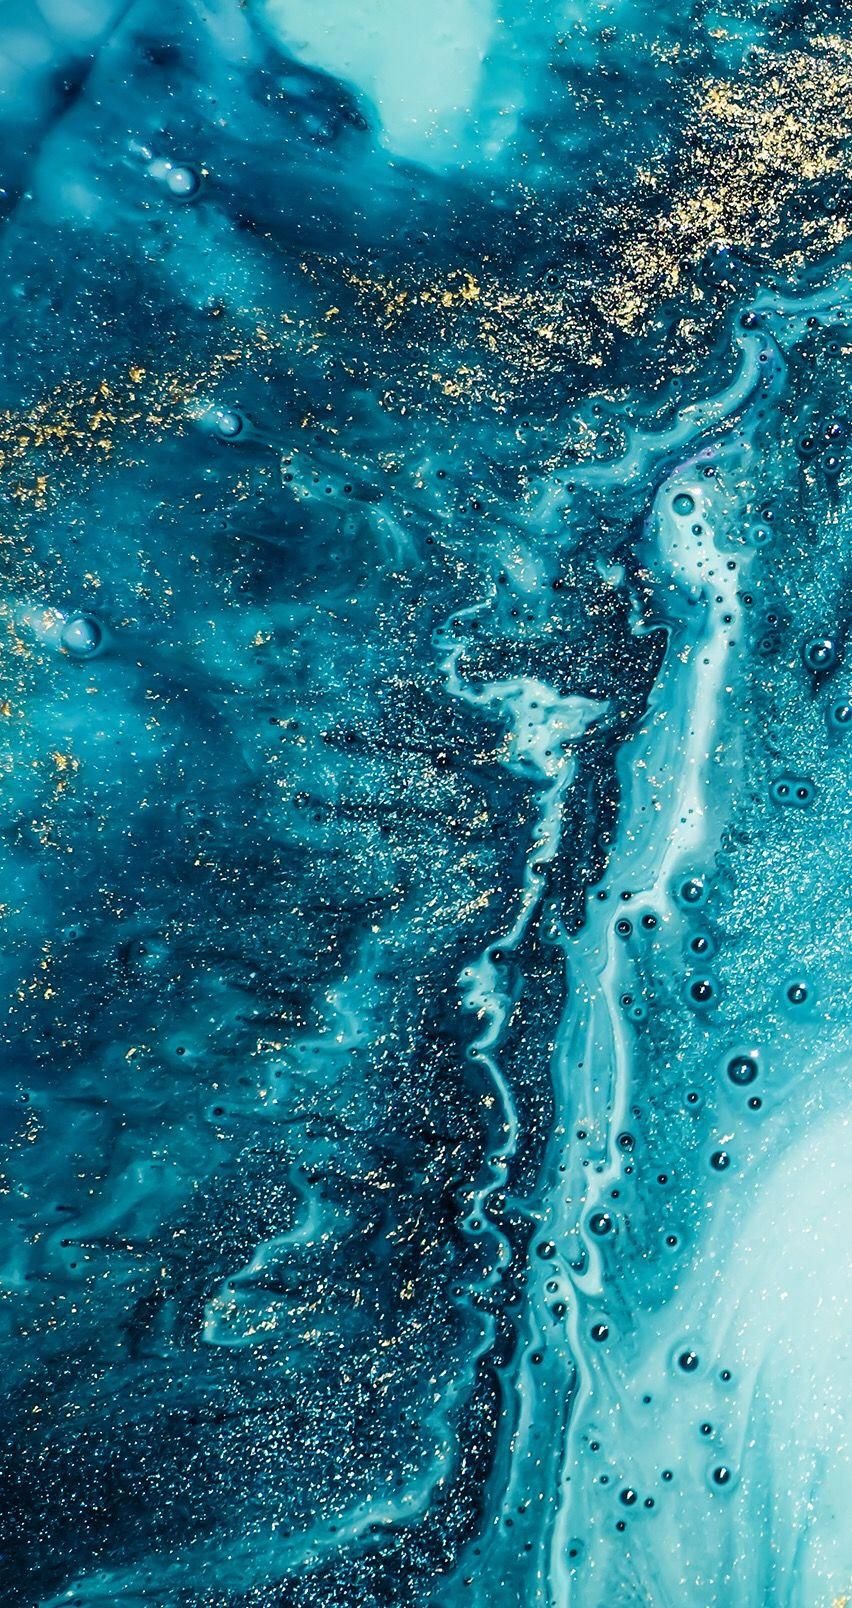 Iphone X Wallpaper Iphonexsmax Watercolor Wallpaper Iphone